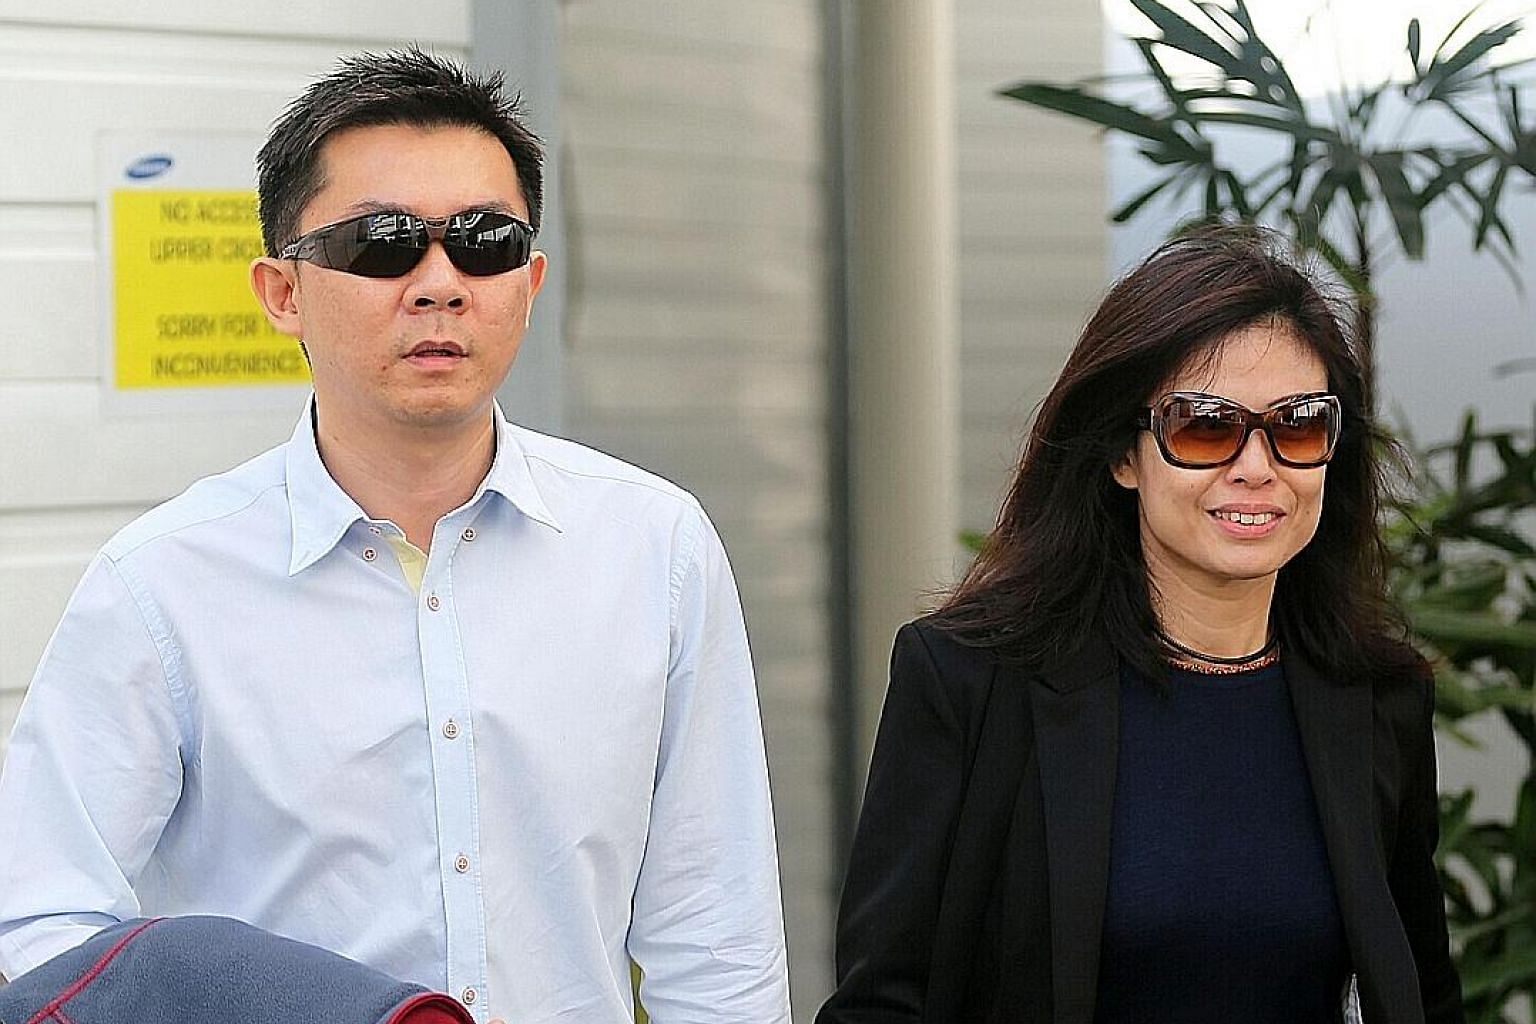 Former regional IT manager Tay Wee Kiat and his wife, former senior sales manager Chia Yun Ling, were given two sets of sentences following two separate trials and appeals over the abuse of their Indonesian and Myanmar maids. ST FILE PHOTO